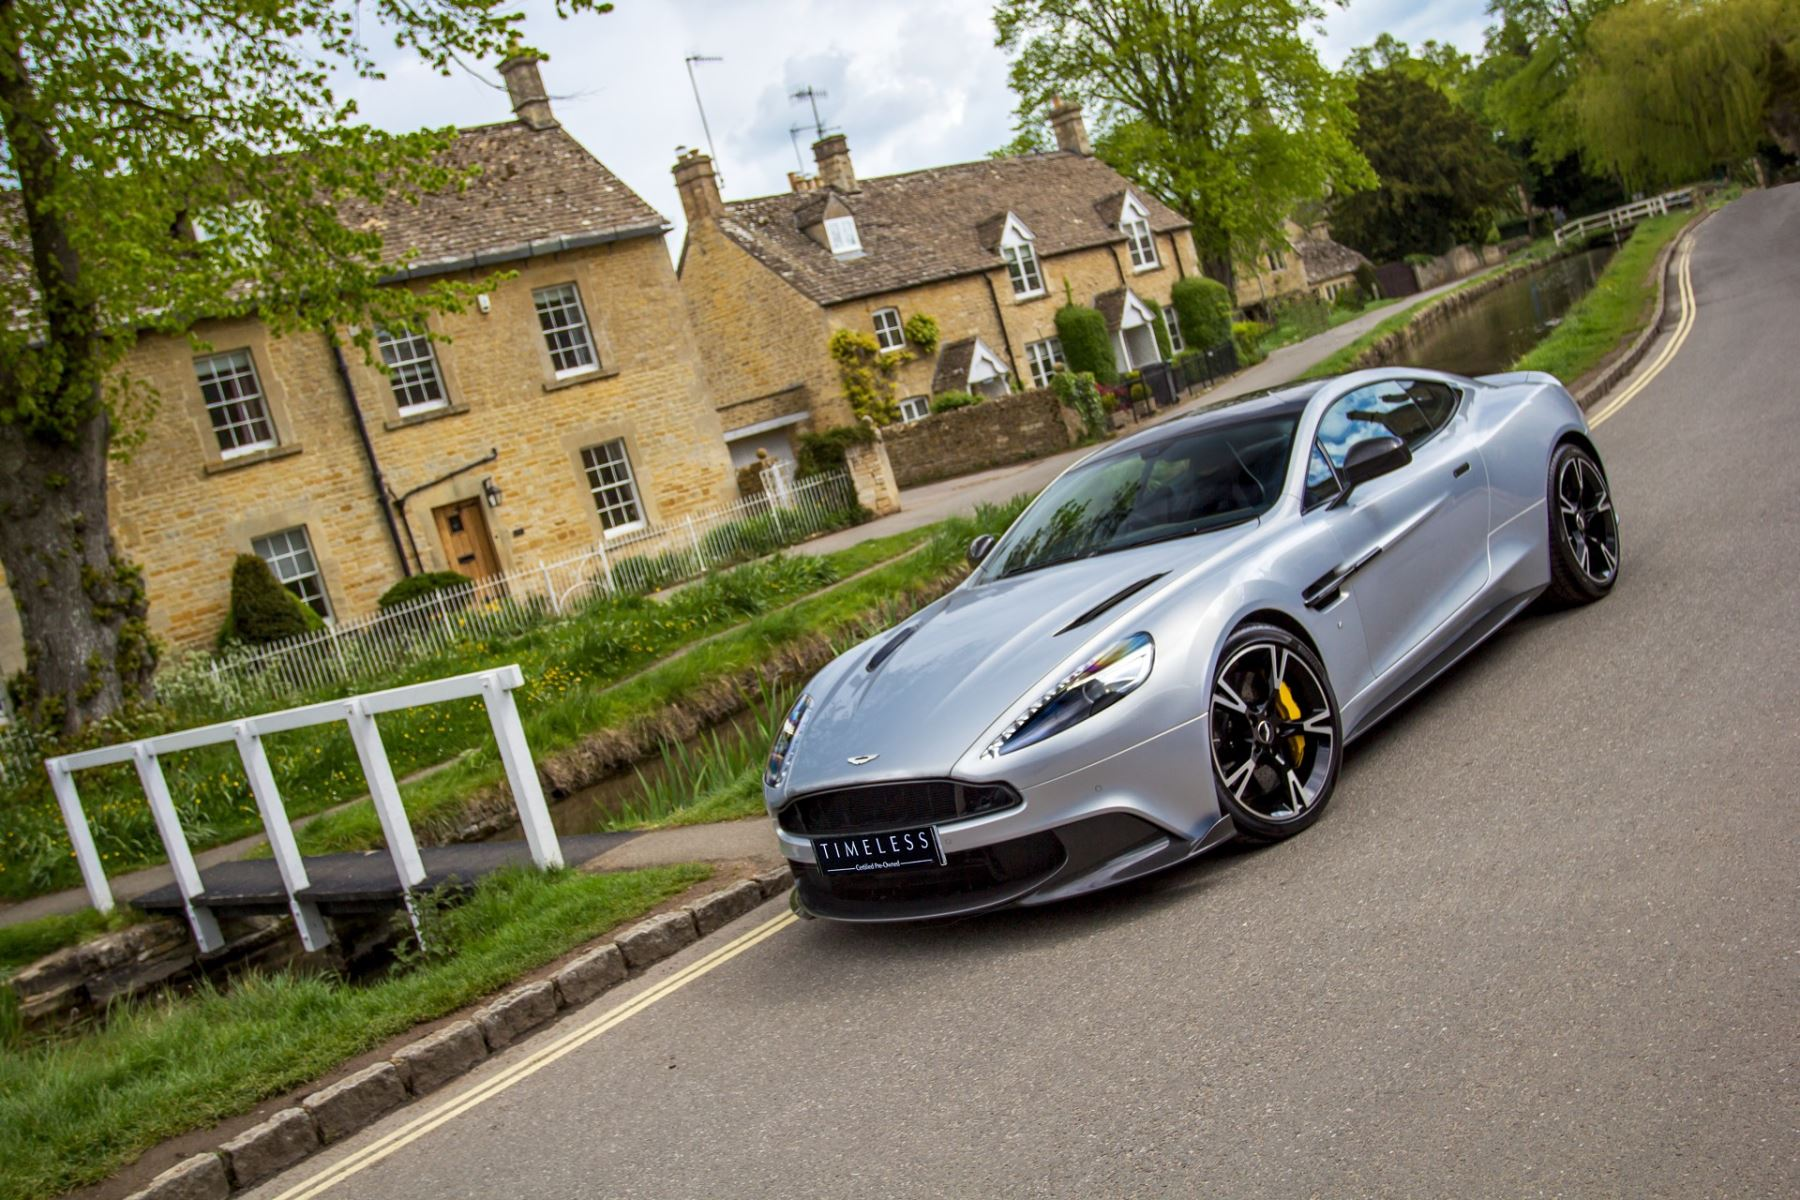 Aston Martin Vanquish V12 [595] S 2+2 2dr Touchtronic image 4